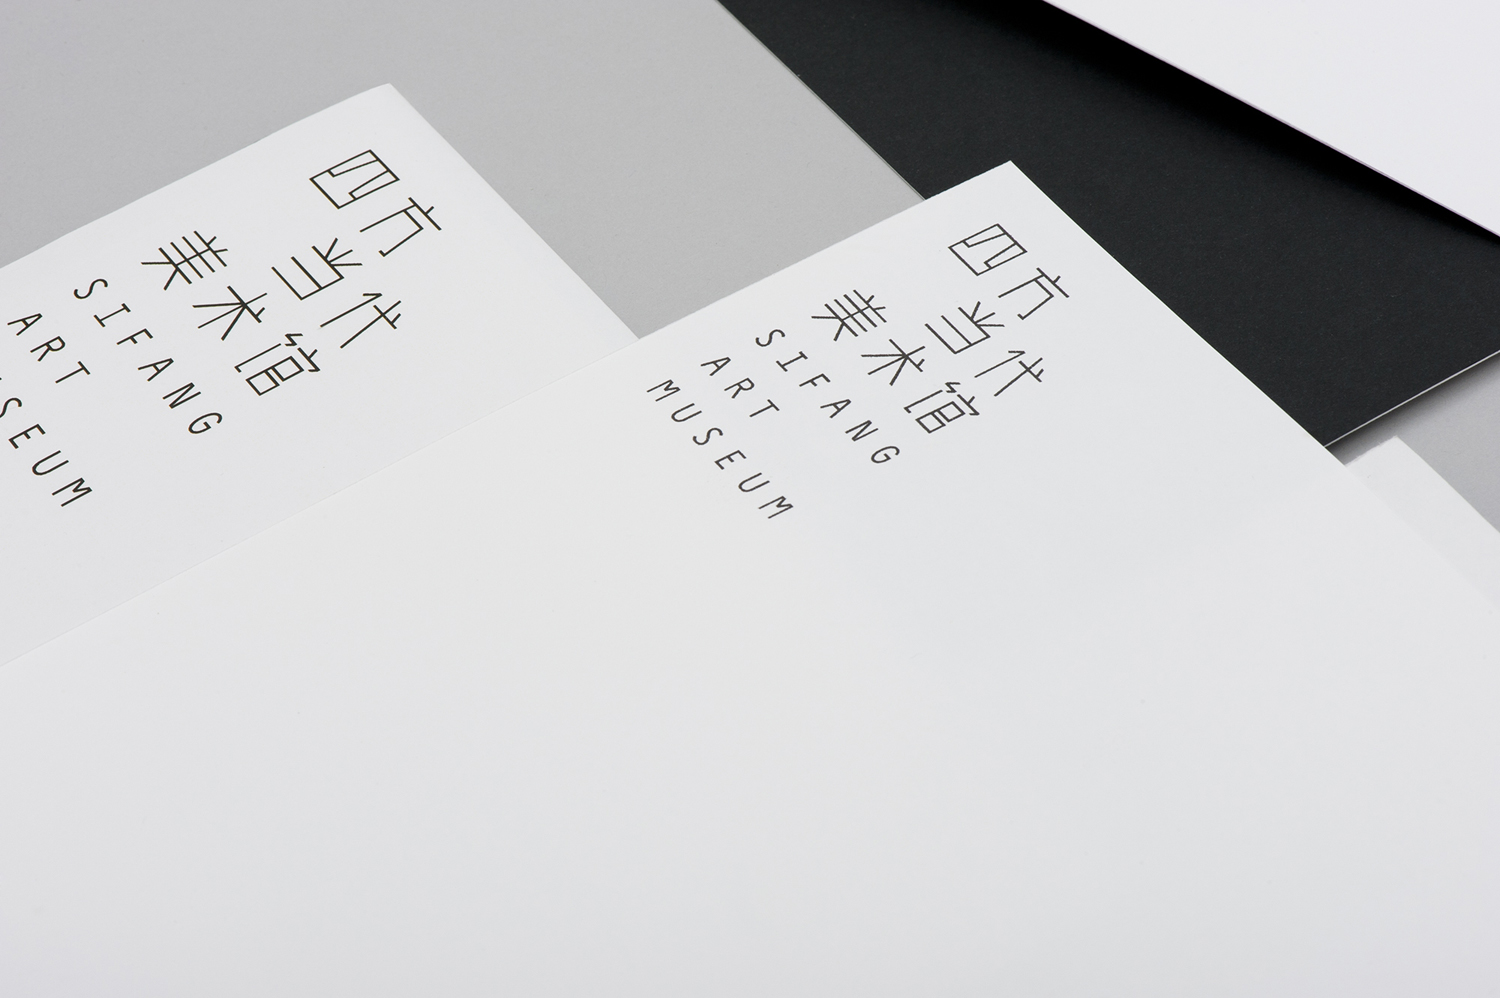 Art Gallery Logos & Exhibition Branding – Sifang Art Museum by Foreign Policy